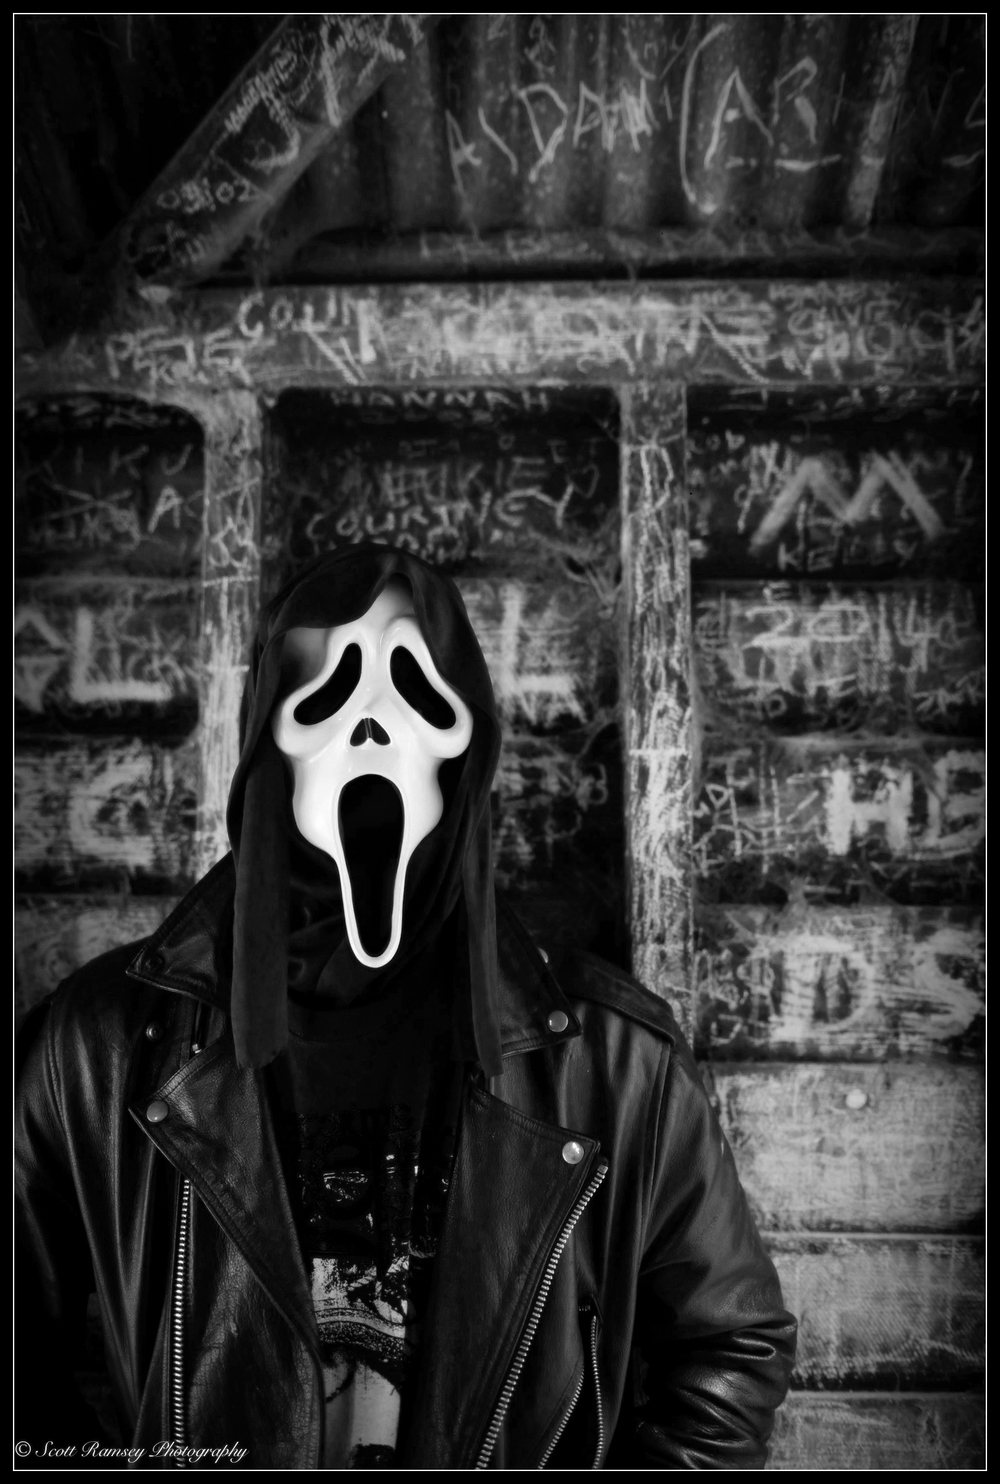 Halloween 2014. A masked man stands next to a graffiti filled wall. © Scott Ramsey Photography